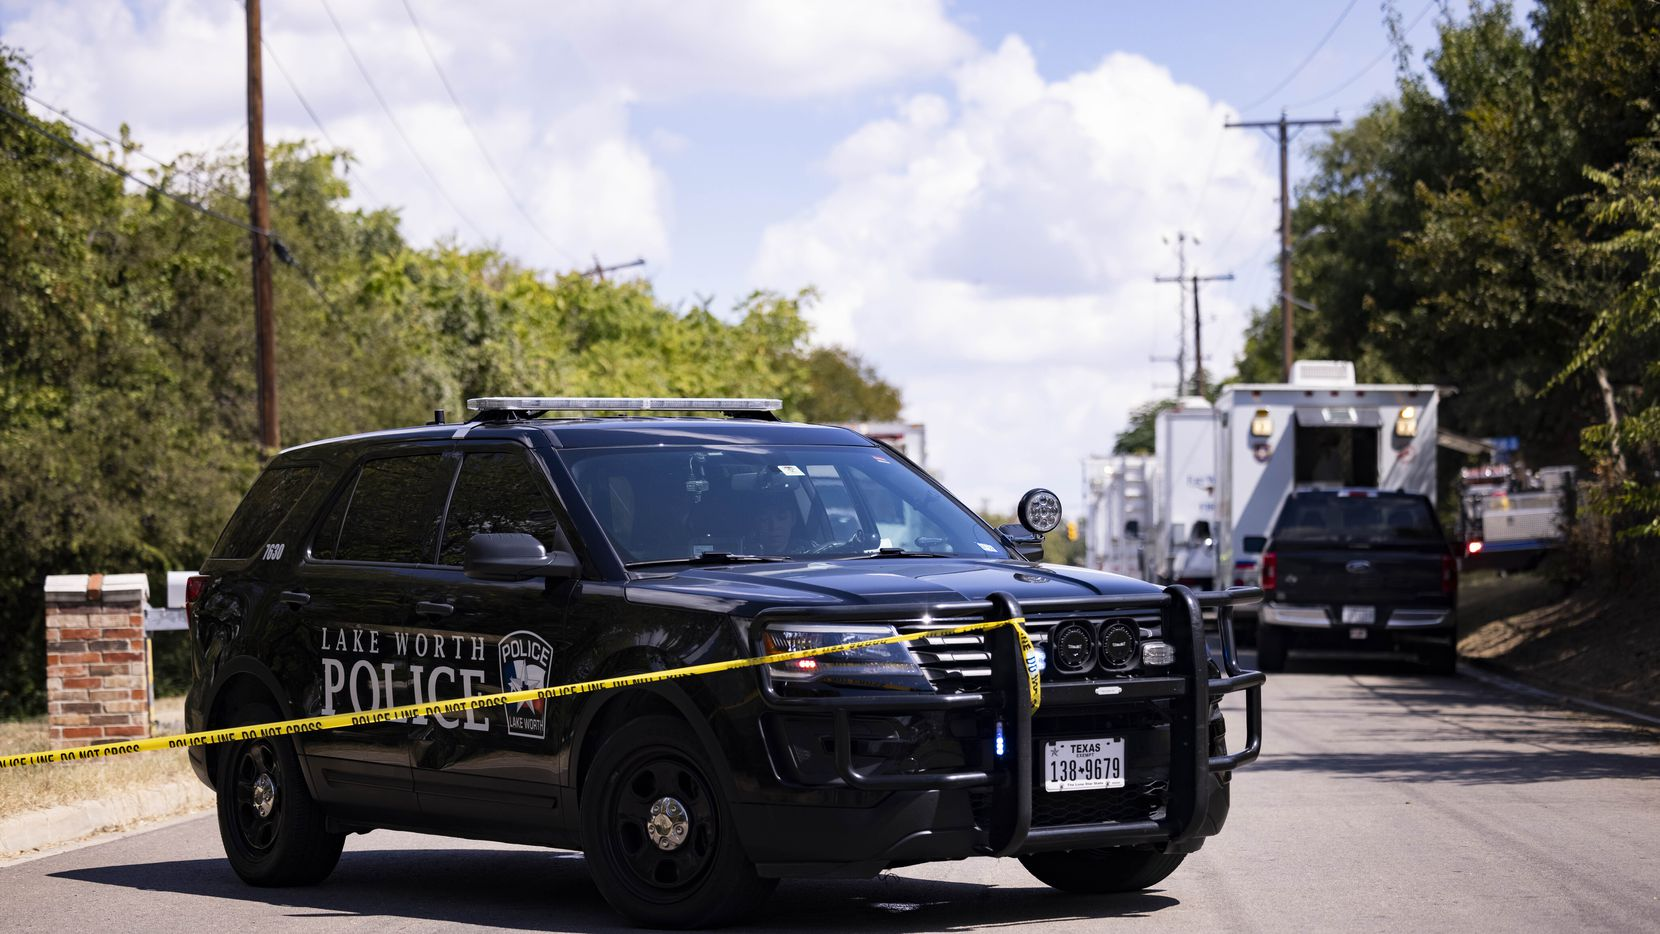 Police blockade close to where a military training aircraft crashed in a residential area on Sunday, Sept. 19, 2021, in Lake Worth. Two pilots were injured and three homes were damages, officials said.